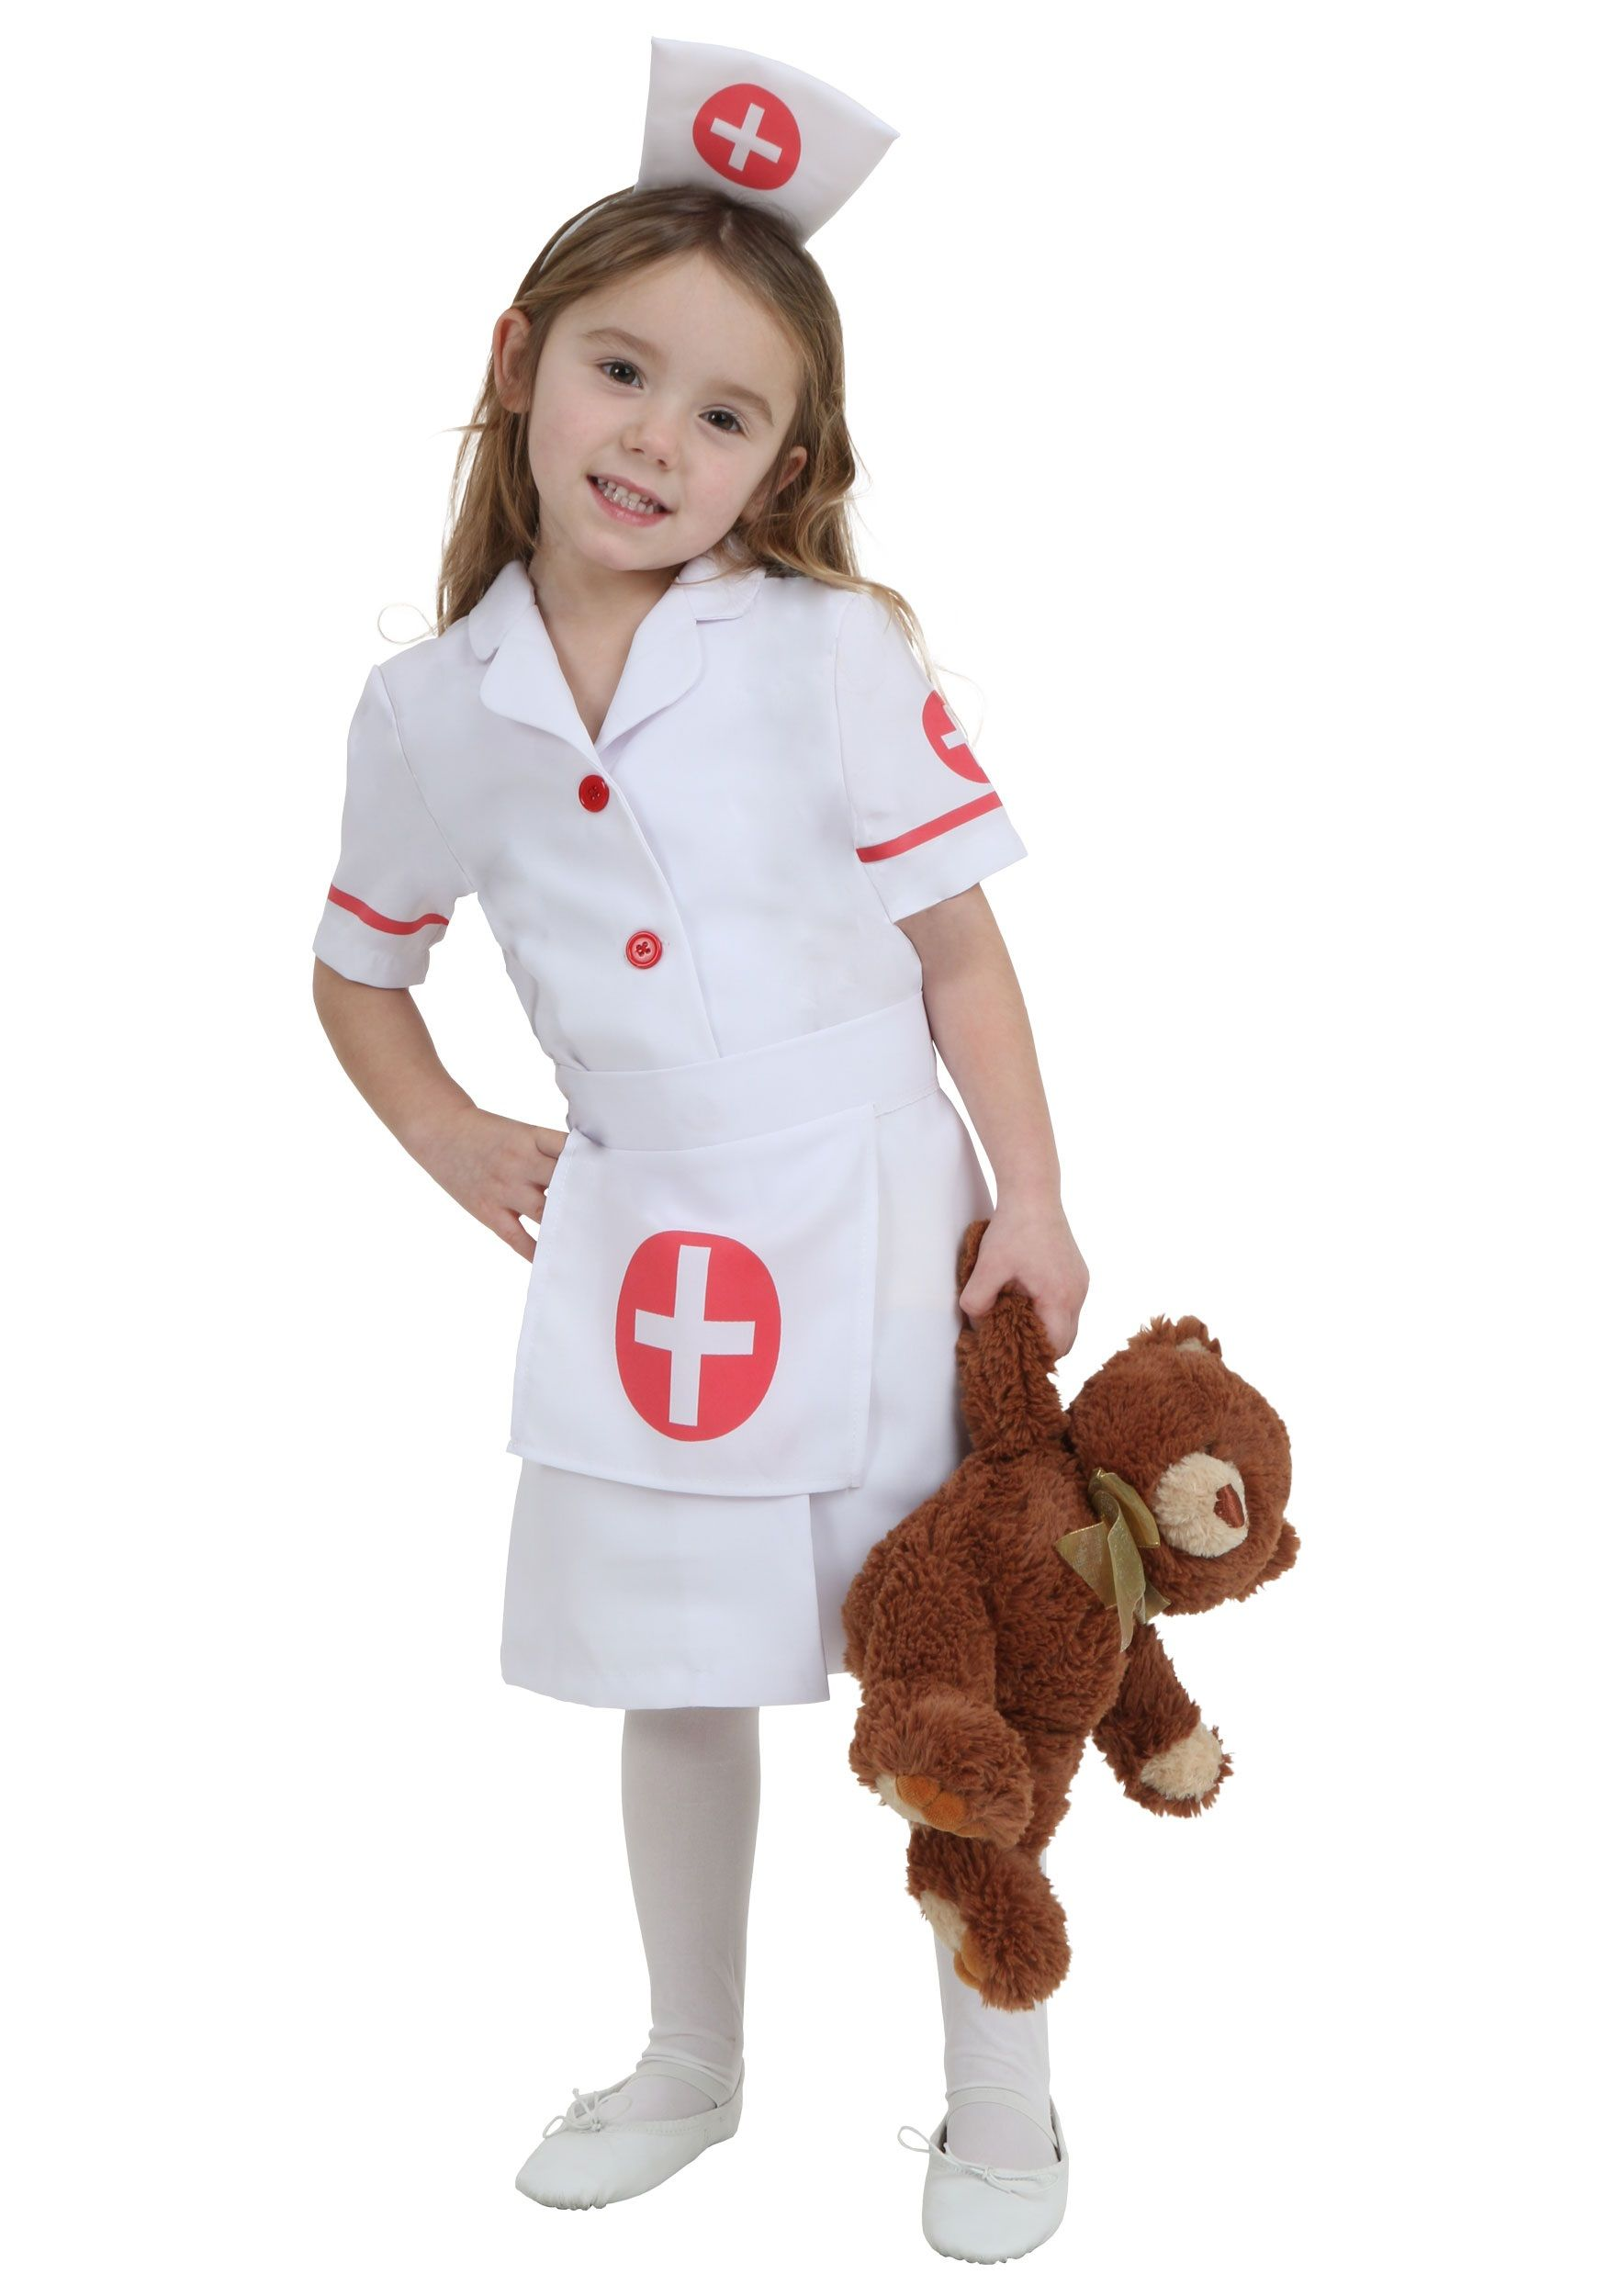 78c97341c1911 Toddler Nurse Costume | Costumes in 2019 | Nurse costume, Nurse ...